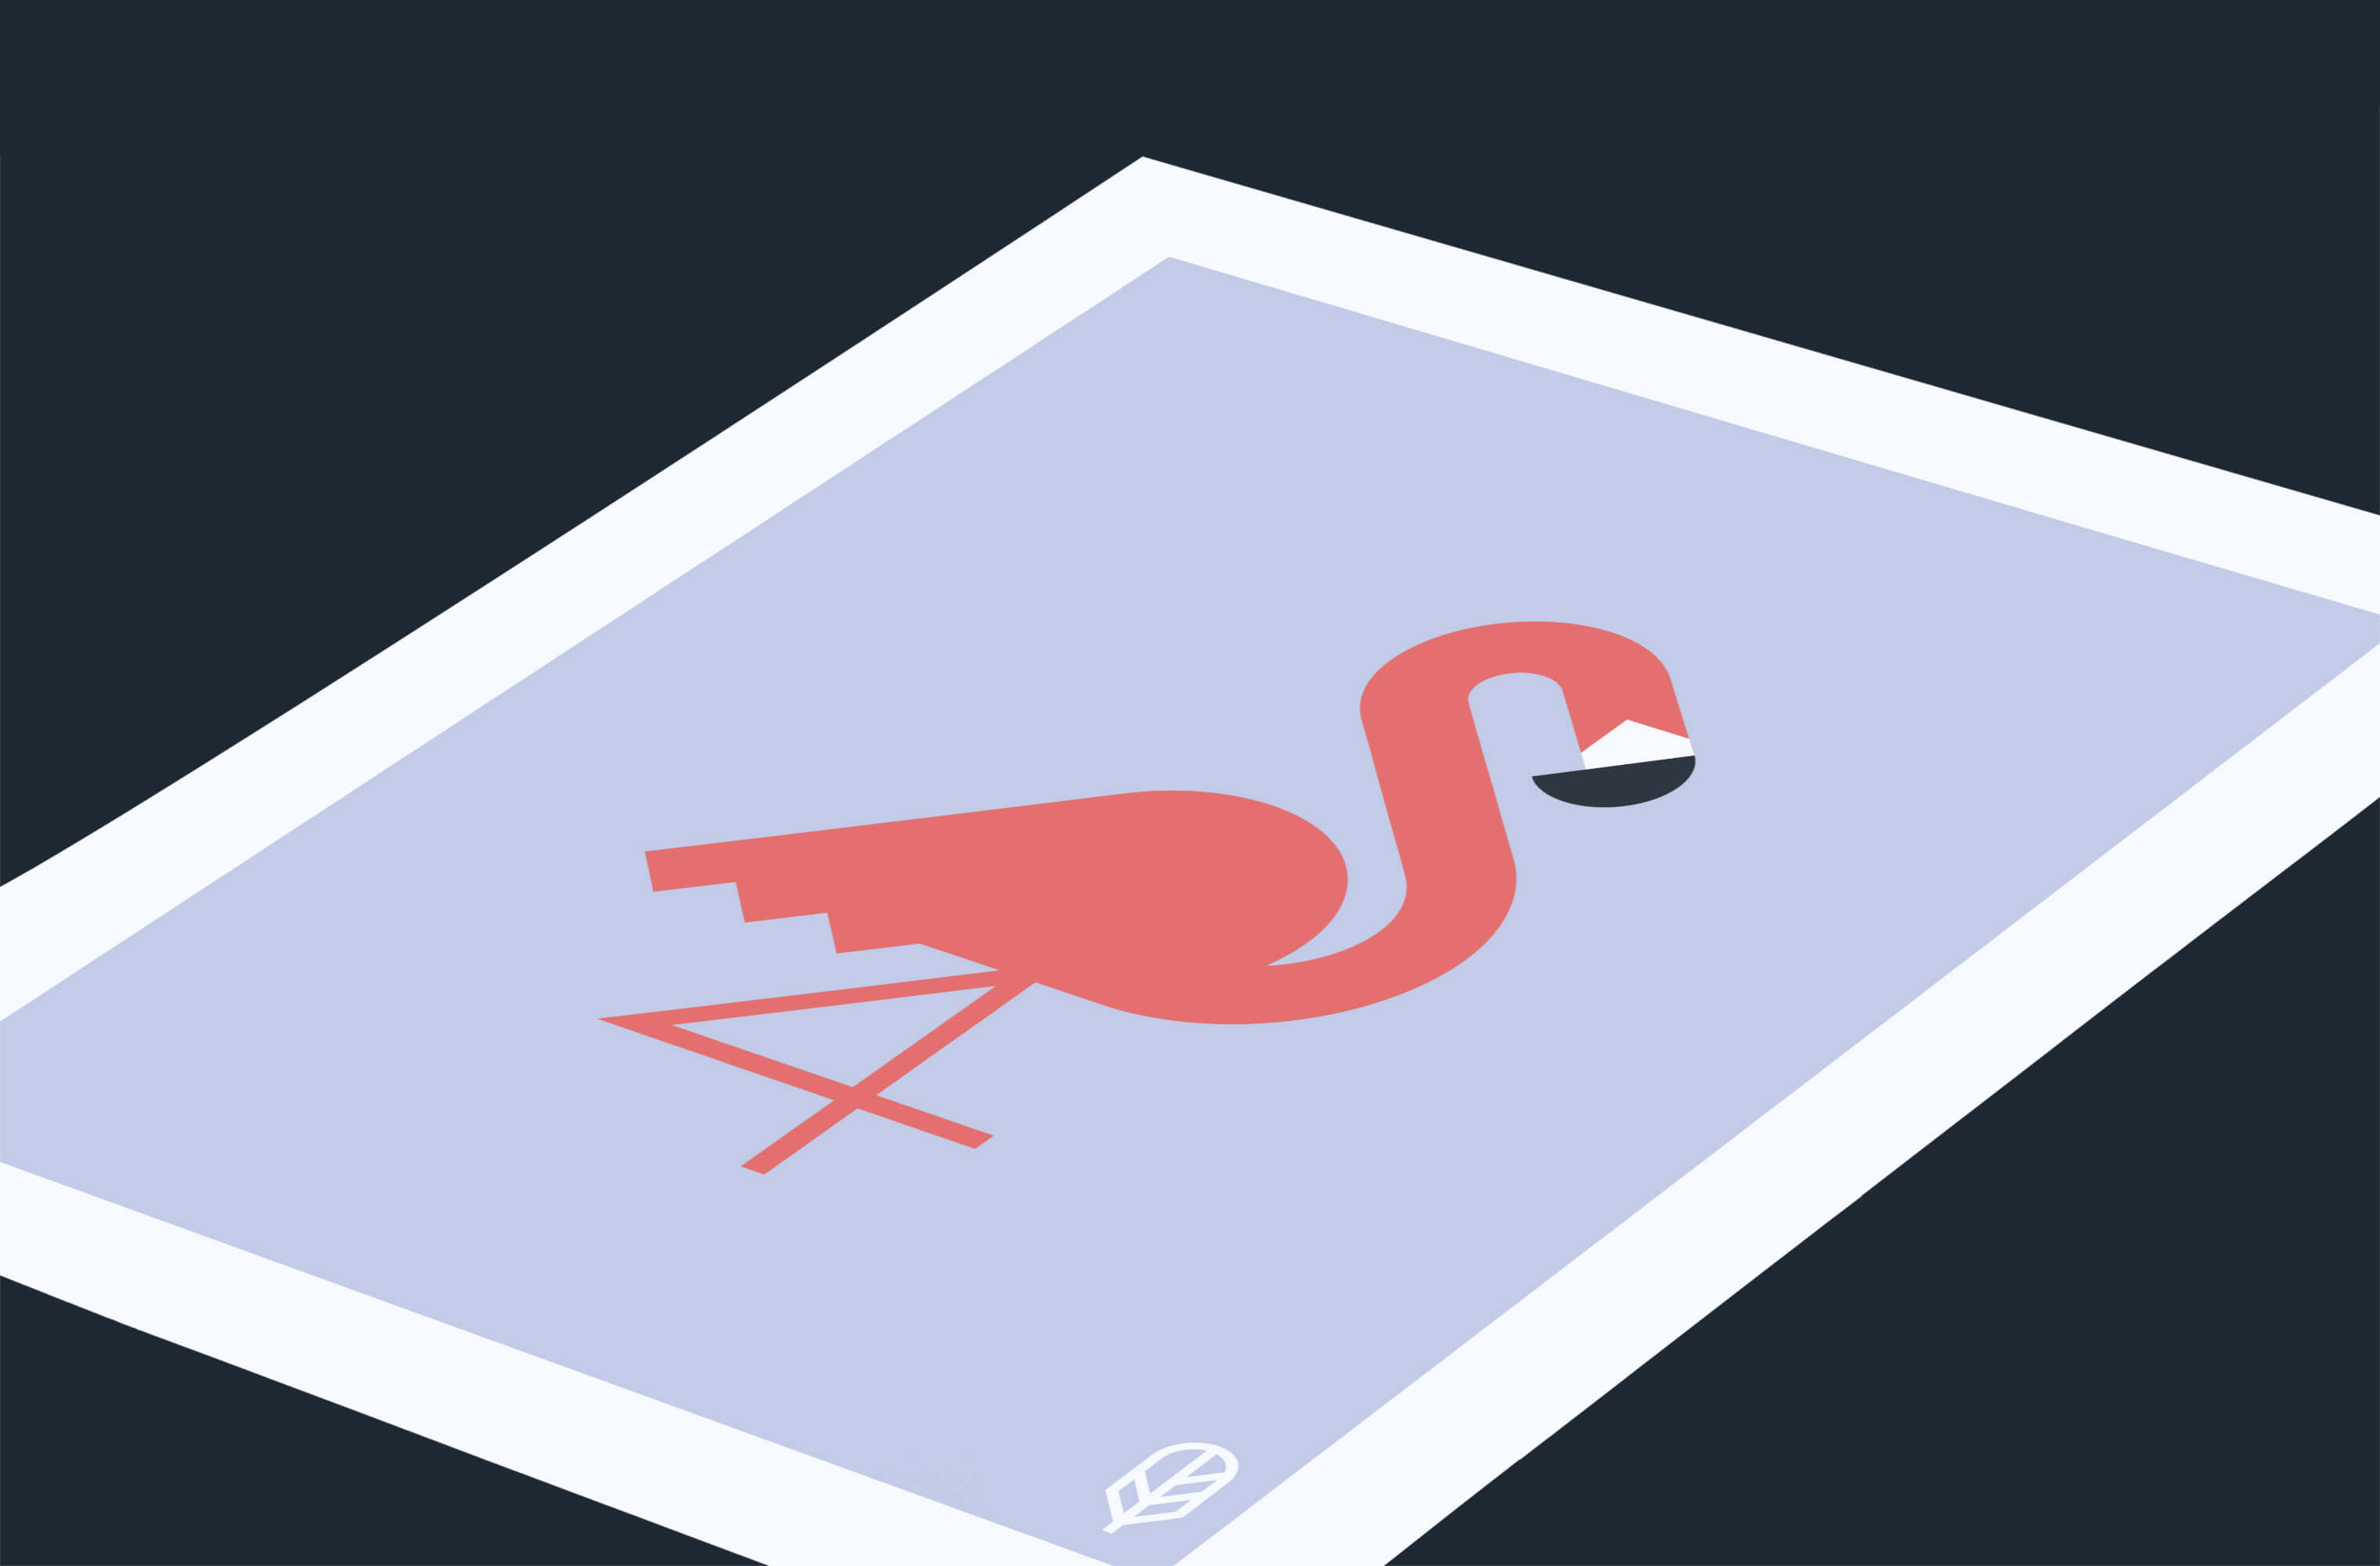 Flock Together print displaying the illustration of a flamingo